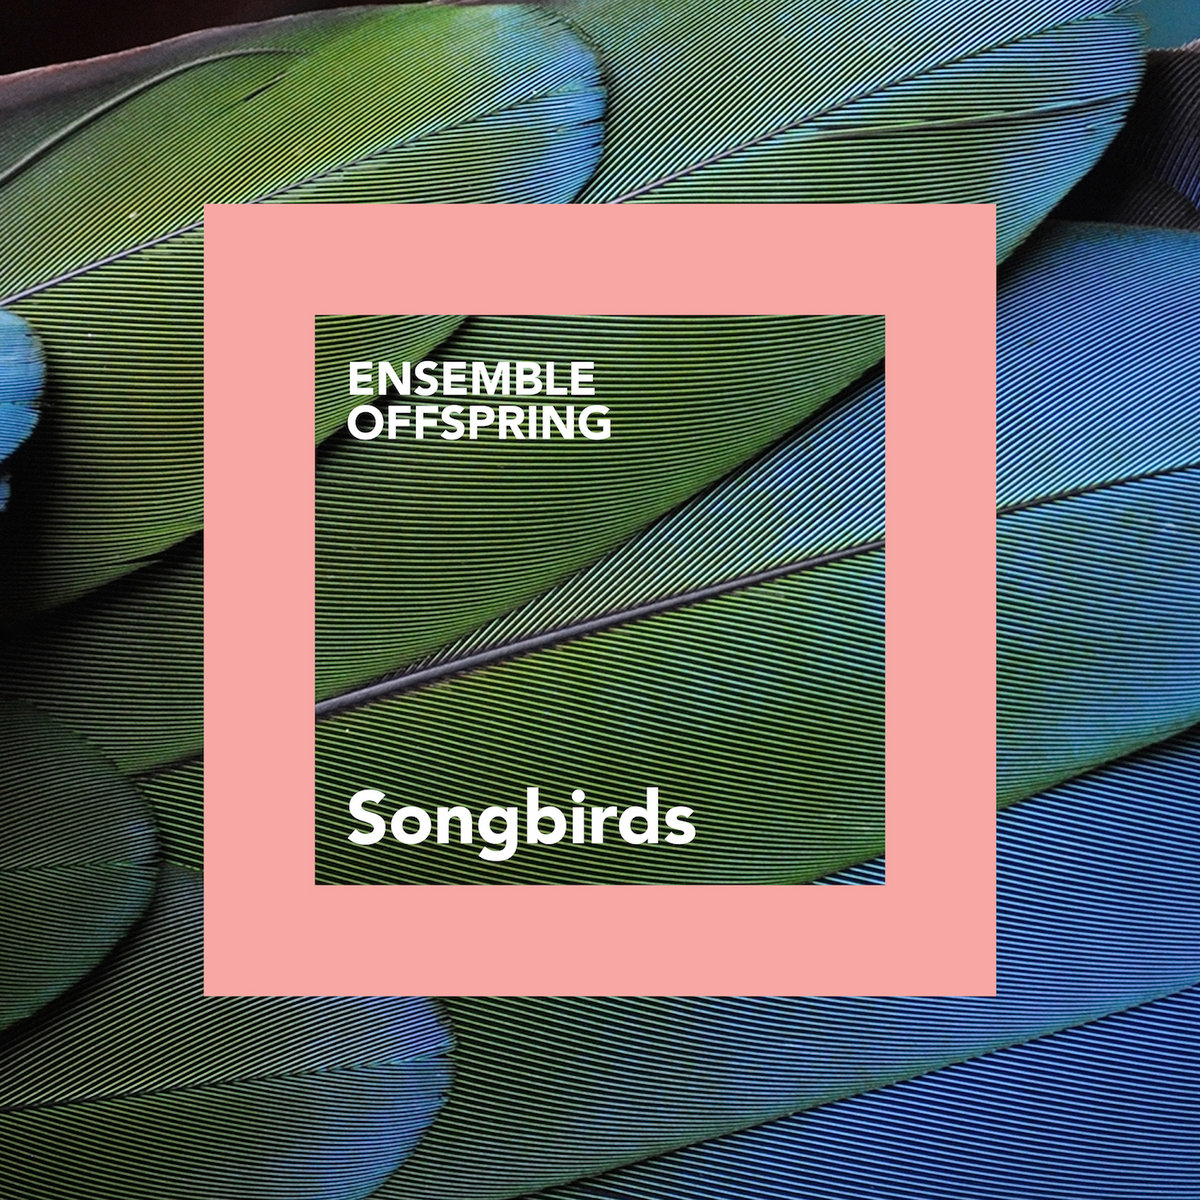 New CD from ABC Music: Songbirds featuring Daybreak